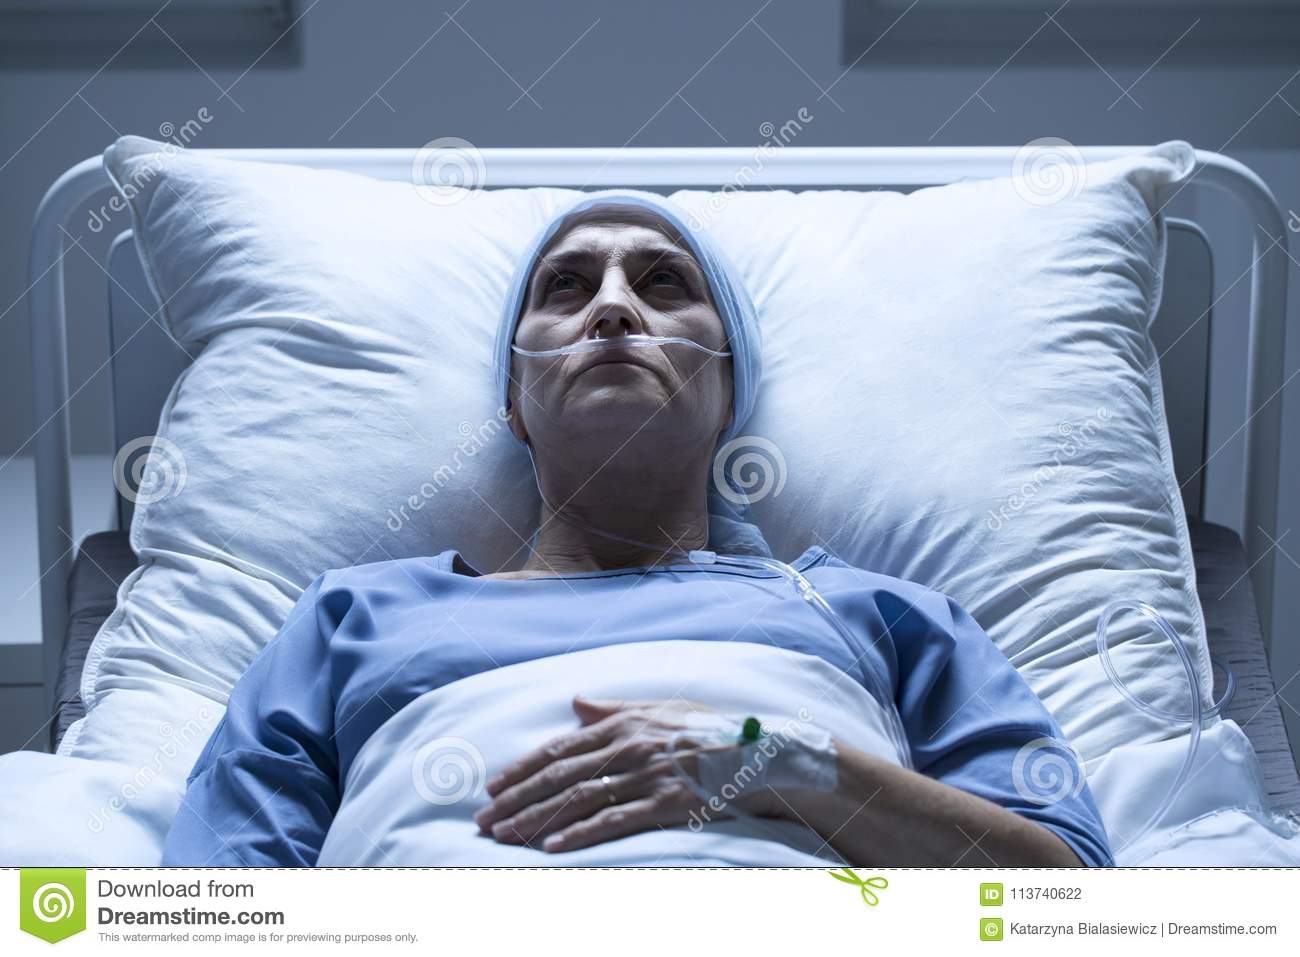 Sick Woman In Hospital Bed Stock Photo. Image Of Drip